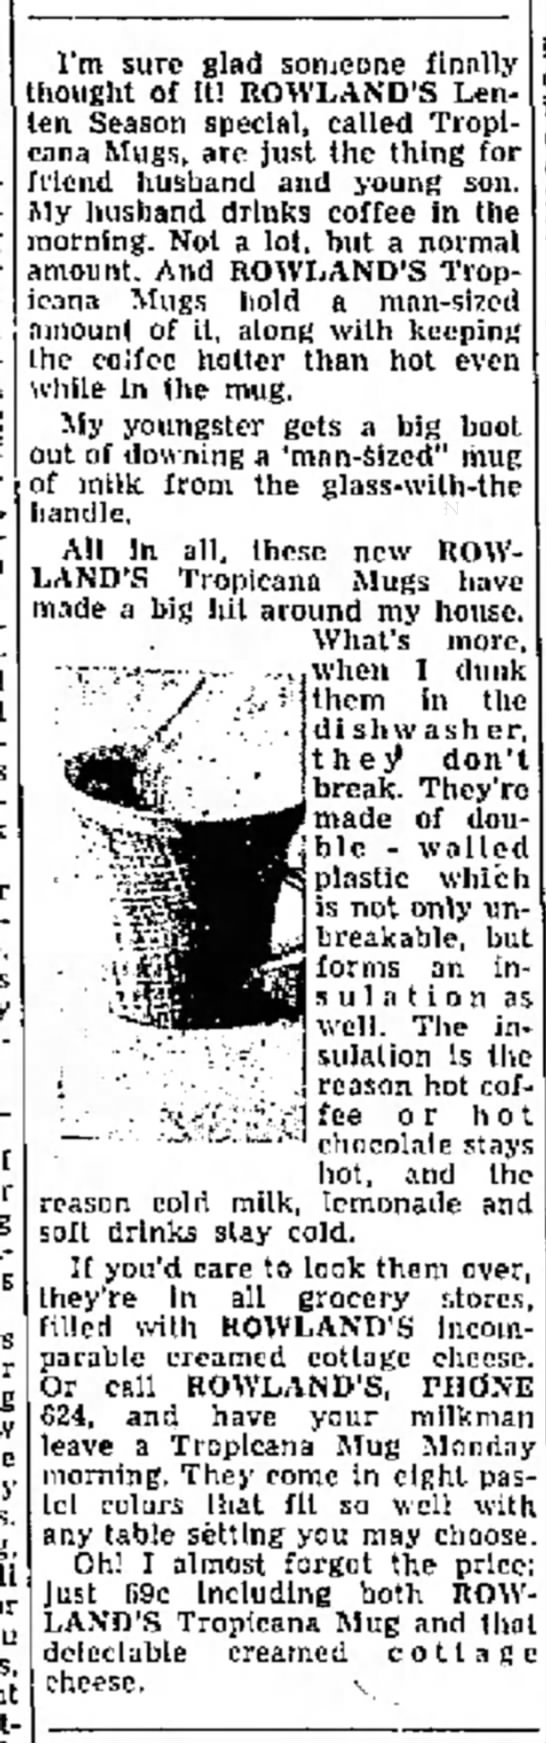 Tropican mugs Rowlands 9 March 1958 -